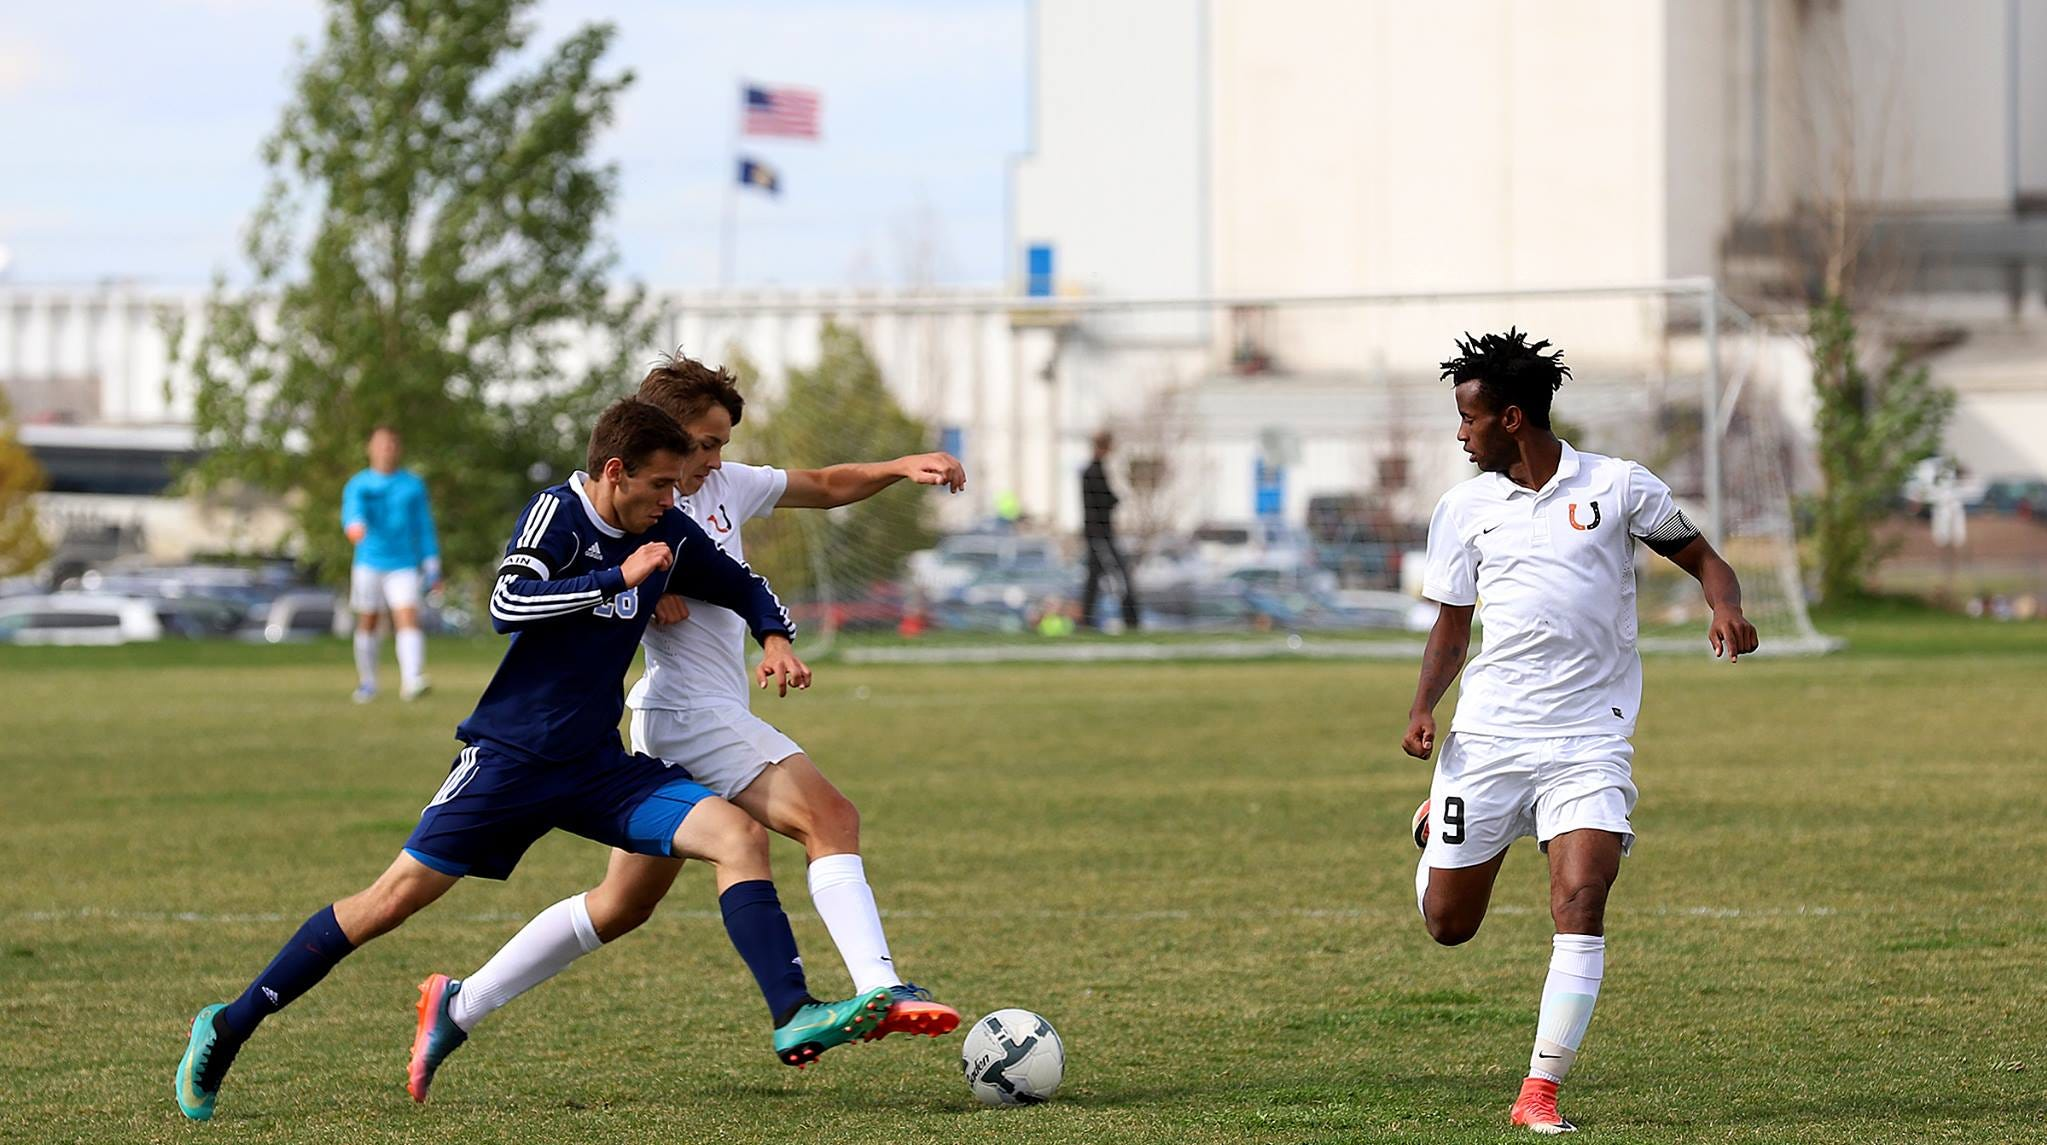 Billings Senior's Caleb Borgstrom, right, was named to the Tribune's Super-State soccer team.